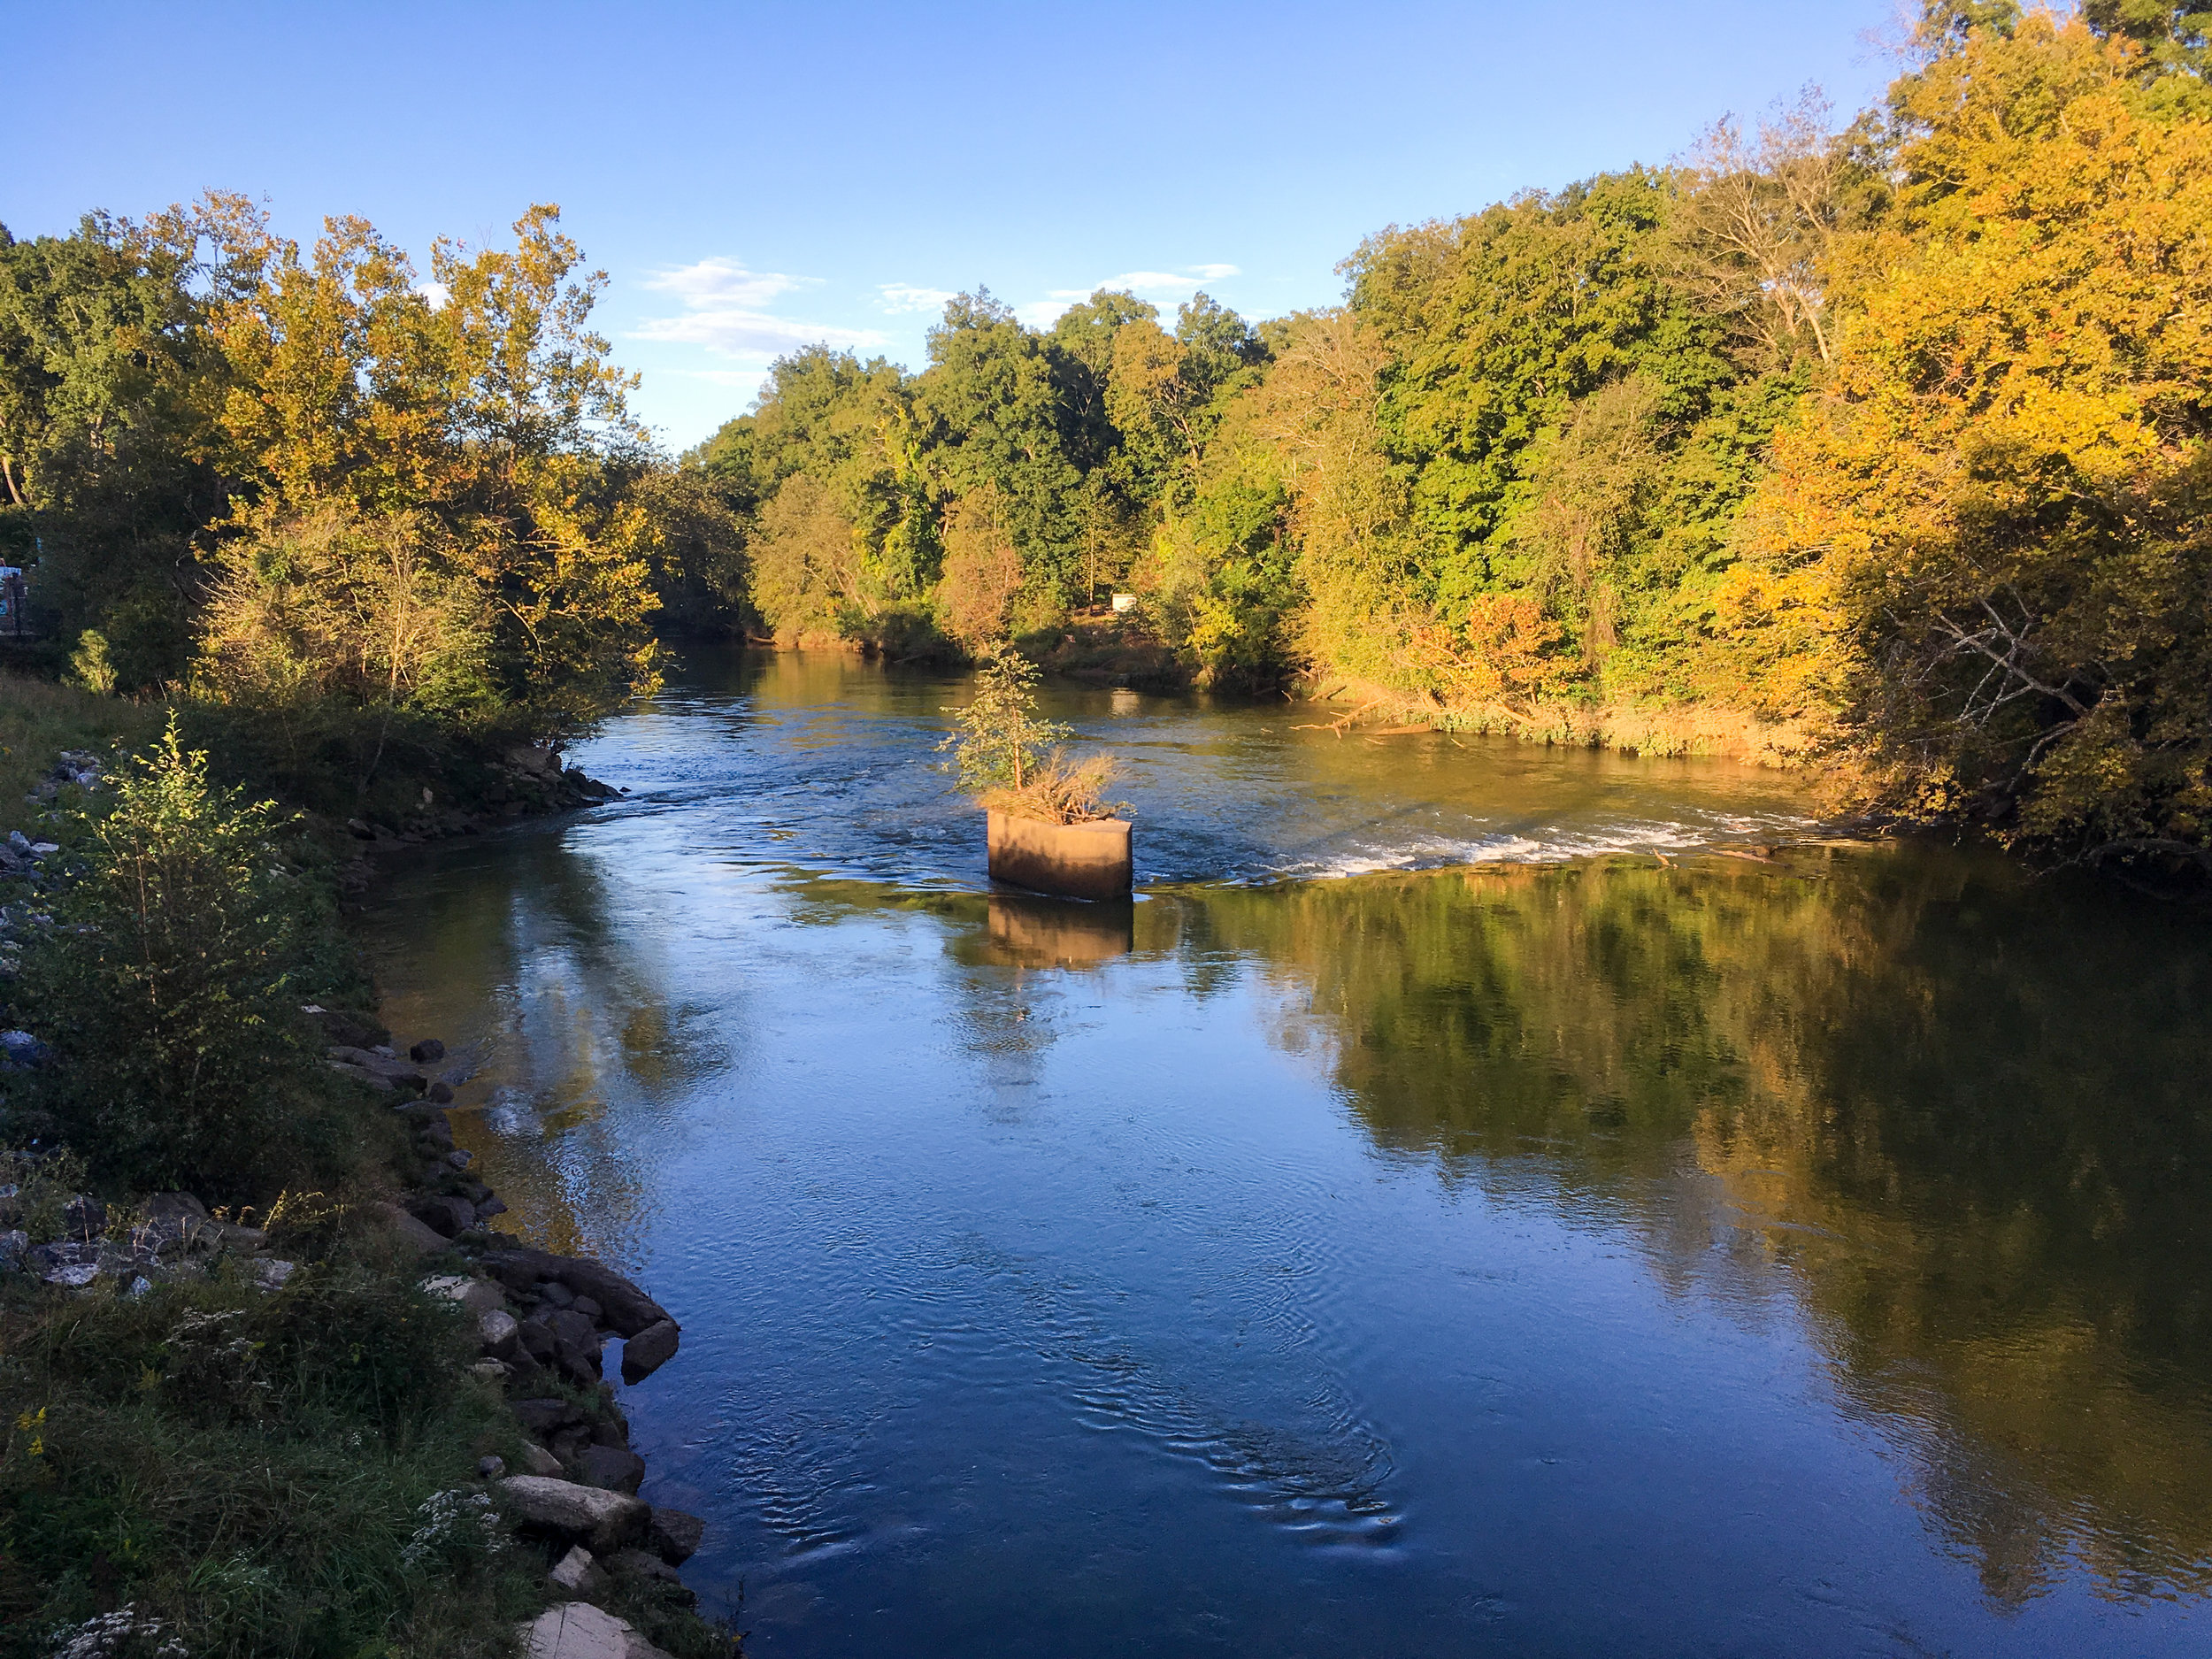 Remnant of original Holcomb Bridge, October 18, 2018